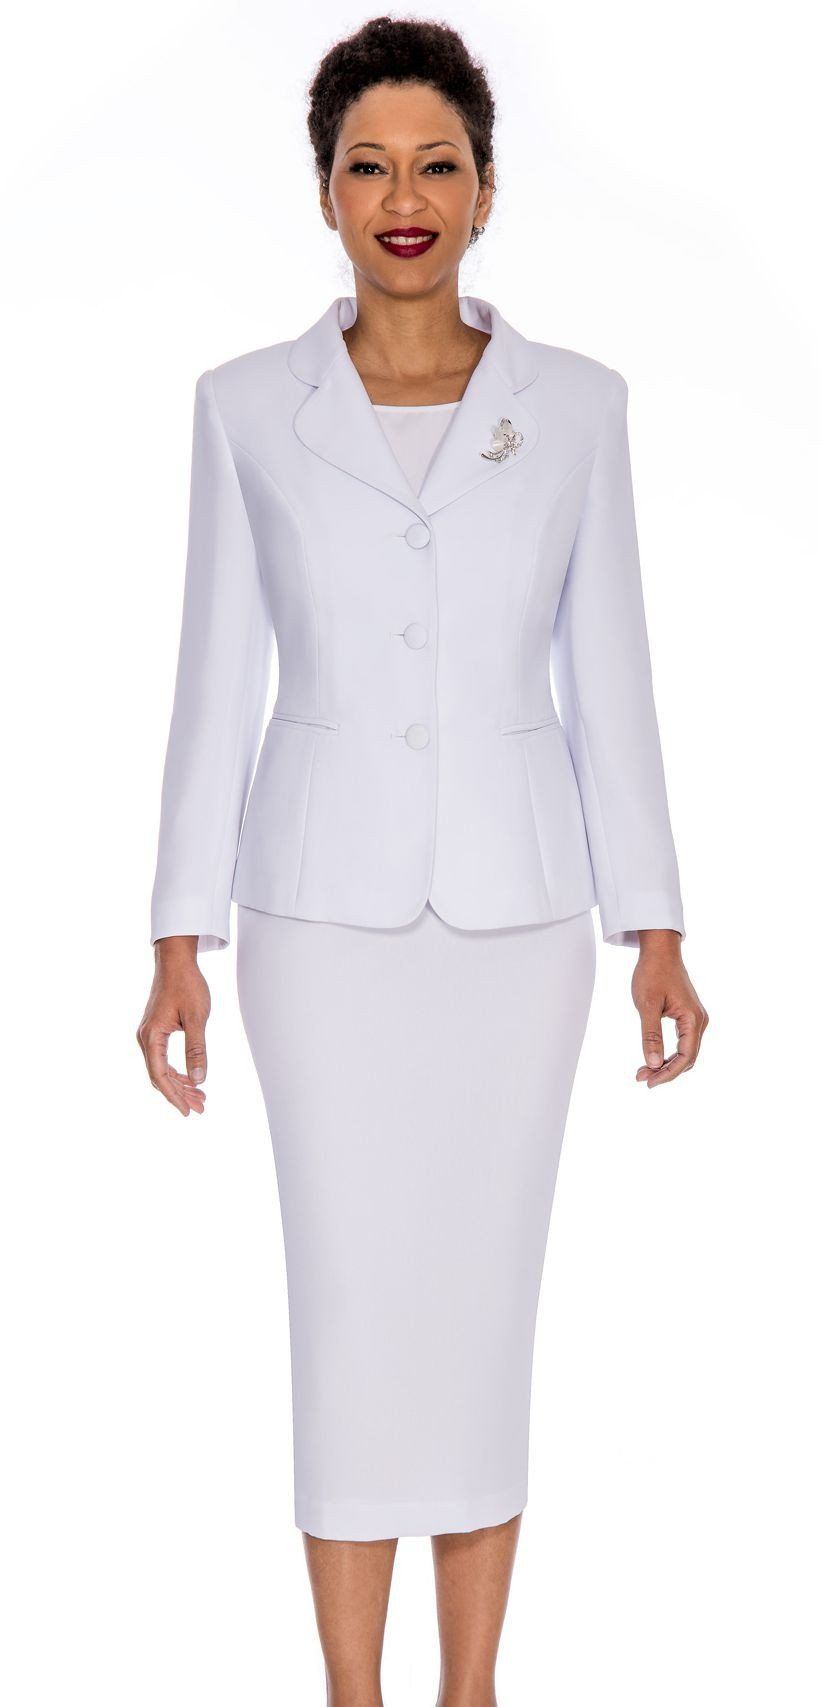 Giovanna Usher Suit 0824- White - Church Suits For Less